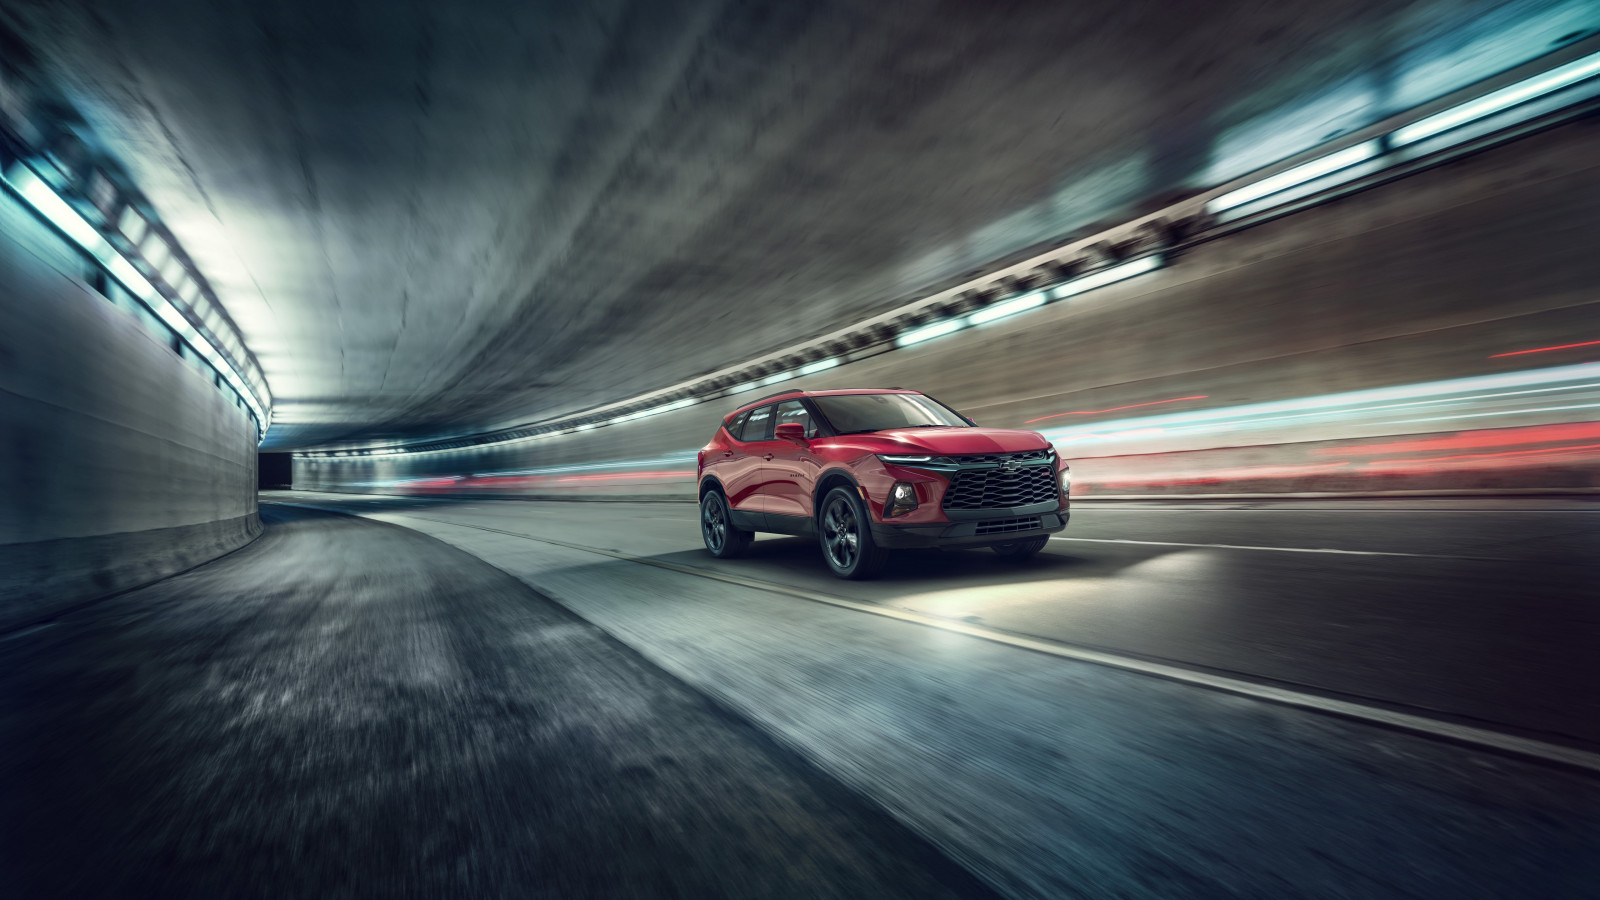 Chevrolet Blazer wallpaper 1600x900